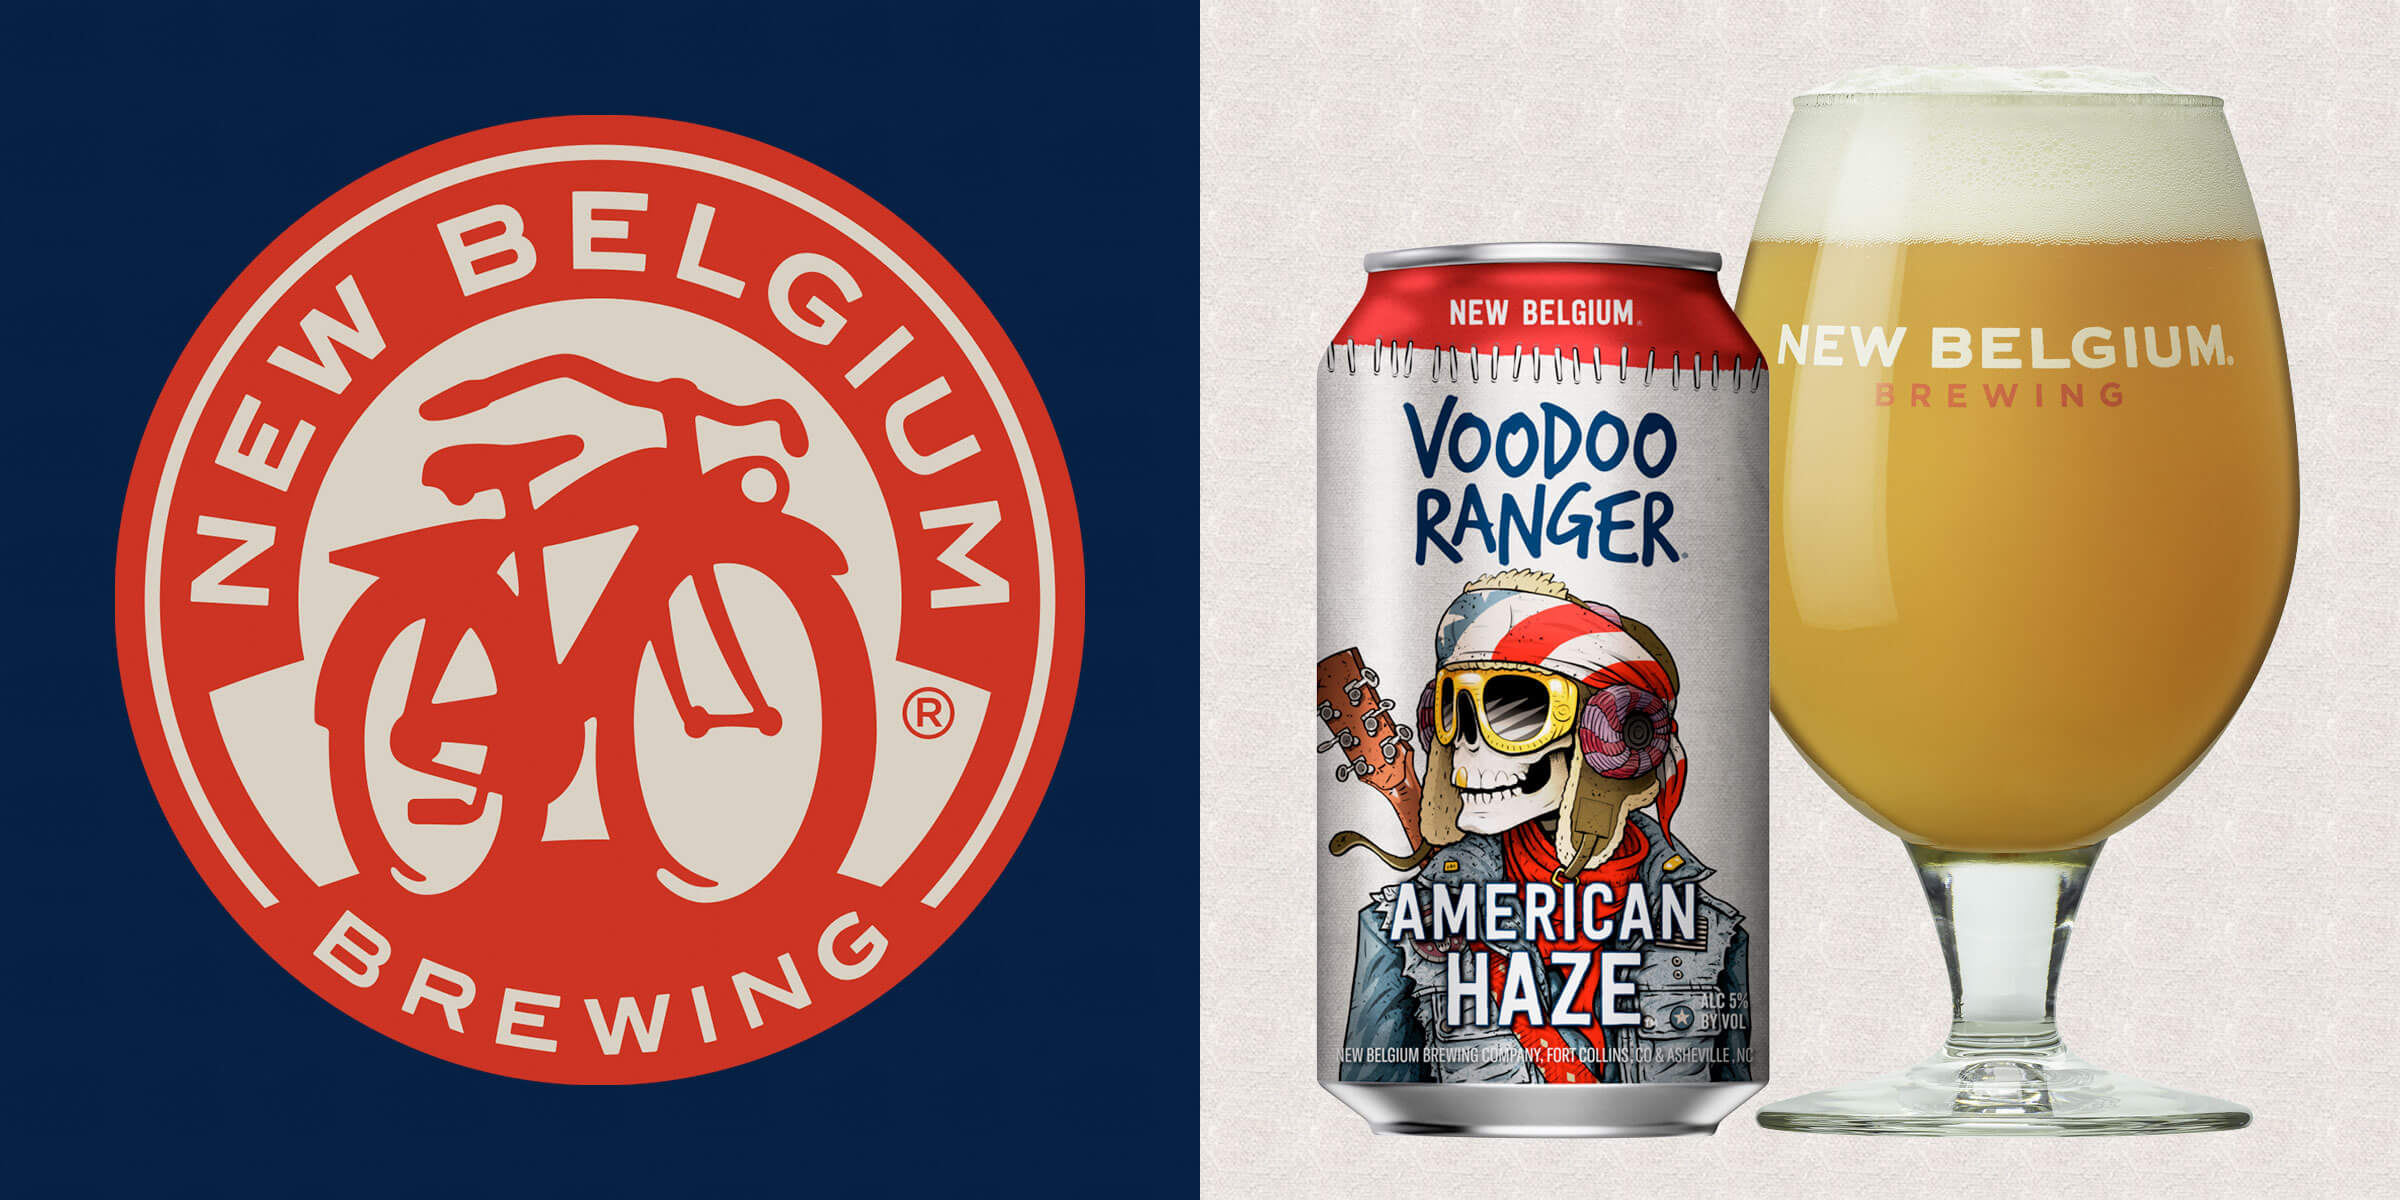 New Belgium Brewing Company announced its newest launch of the Voodoo Ranger brand series, American Haze, a 5% ABV IPA built to enjoy anytime and anywhere.